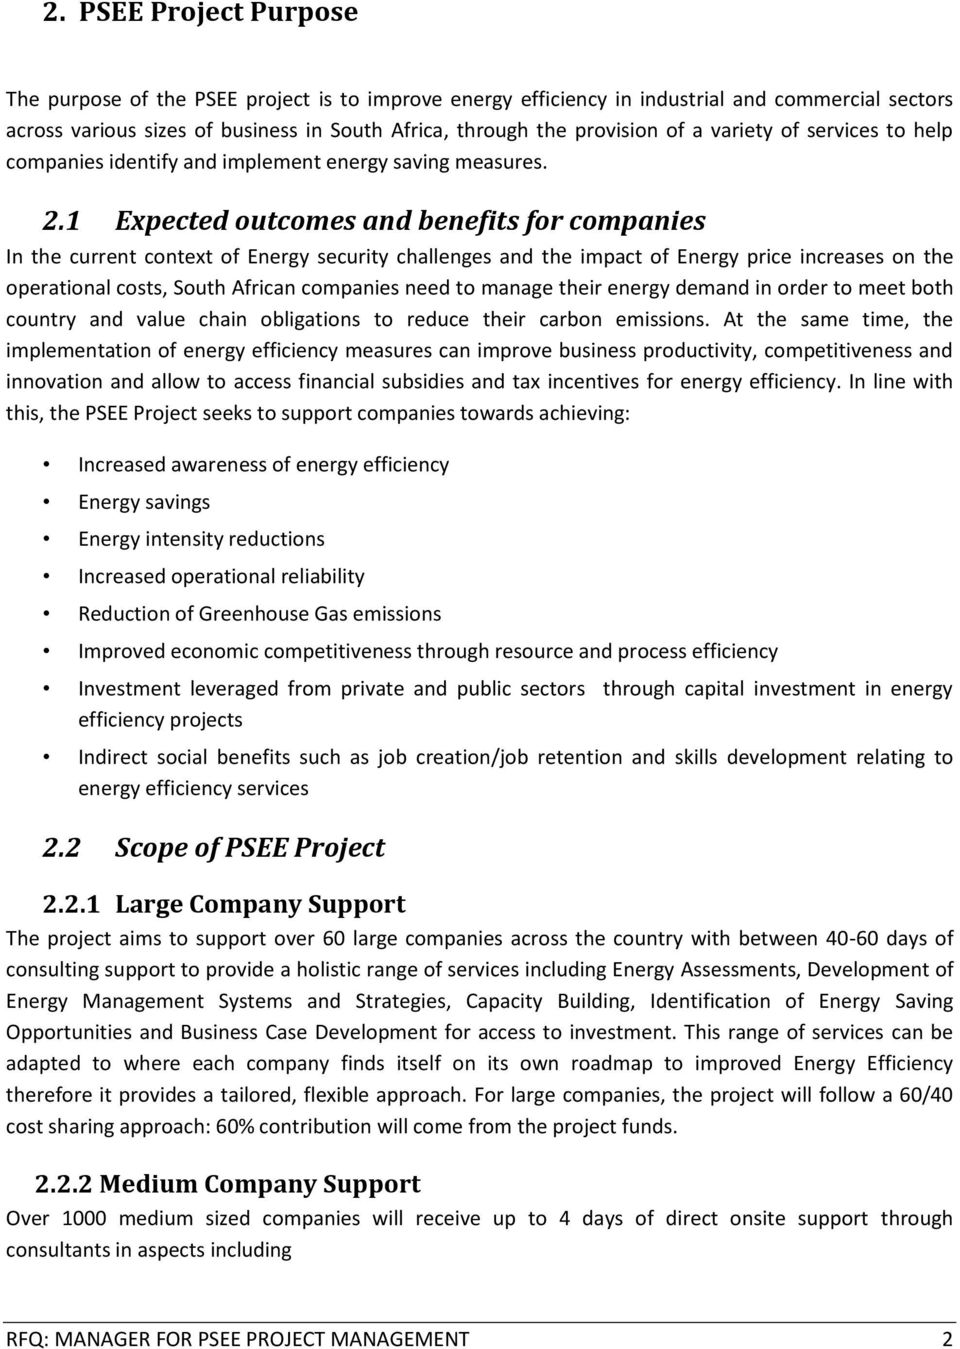 1 Expected outcomes and benefits for companies In the current context of Energy security challenges and the impact of Energy price increases on the operational costs, South African companies need to